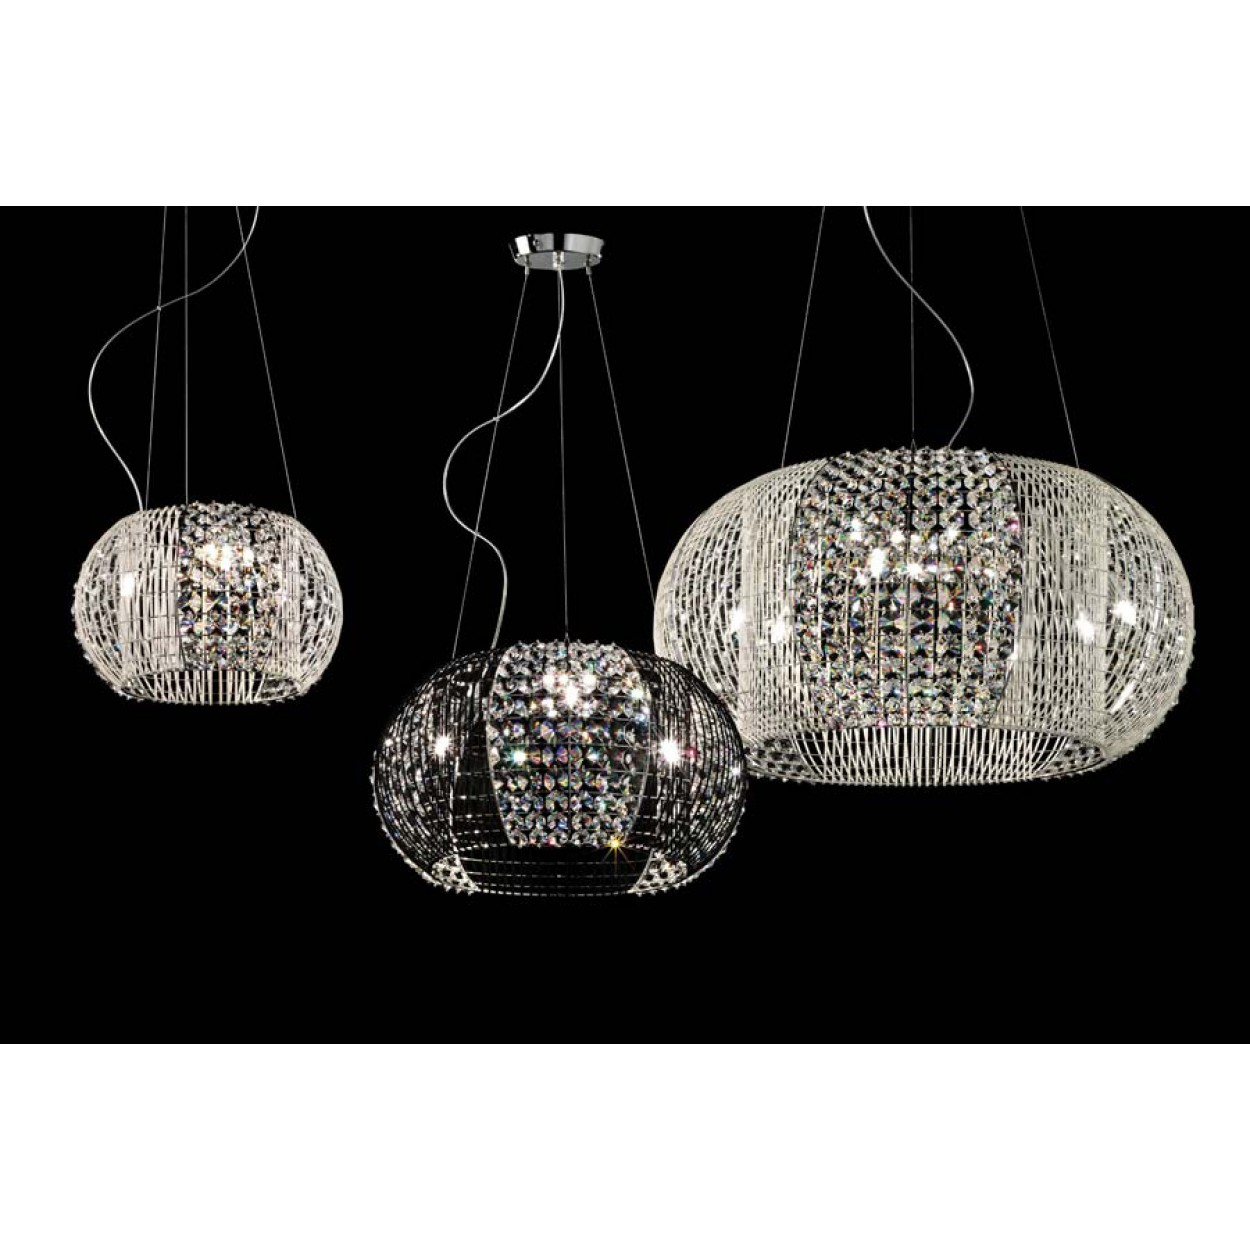 CONTEMPORARY SUSPENSION LAMPS FIXTURE